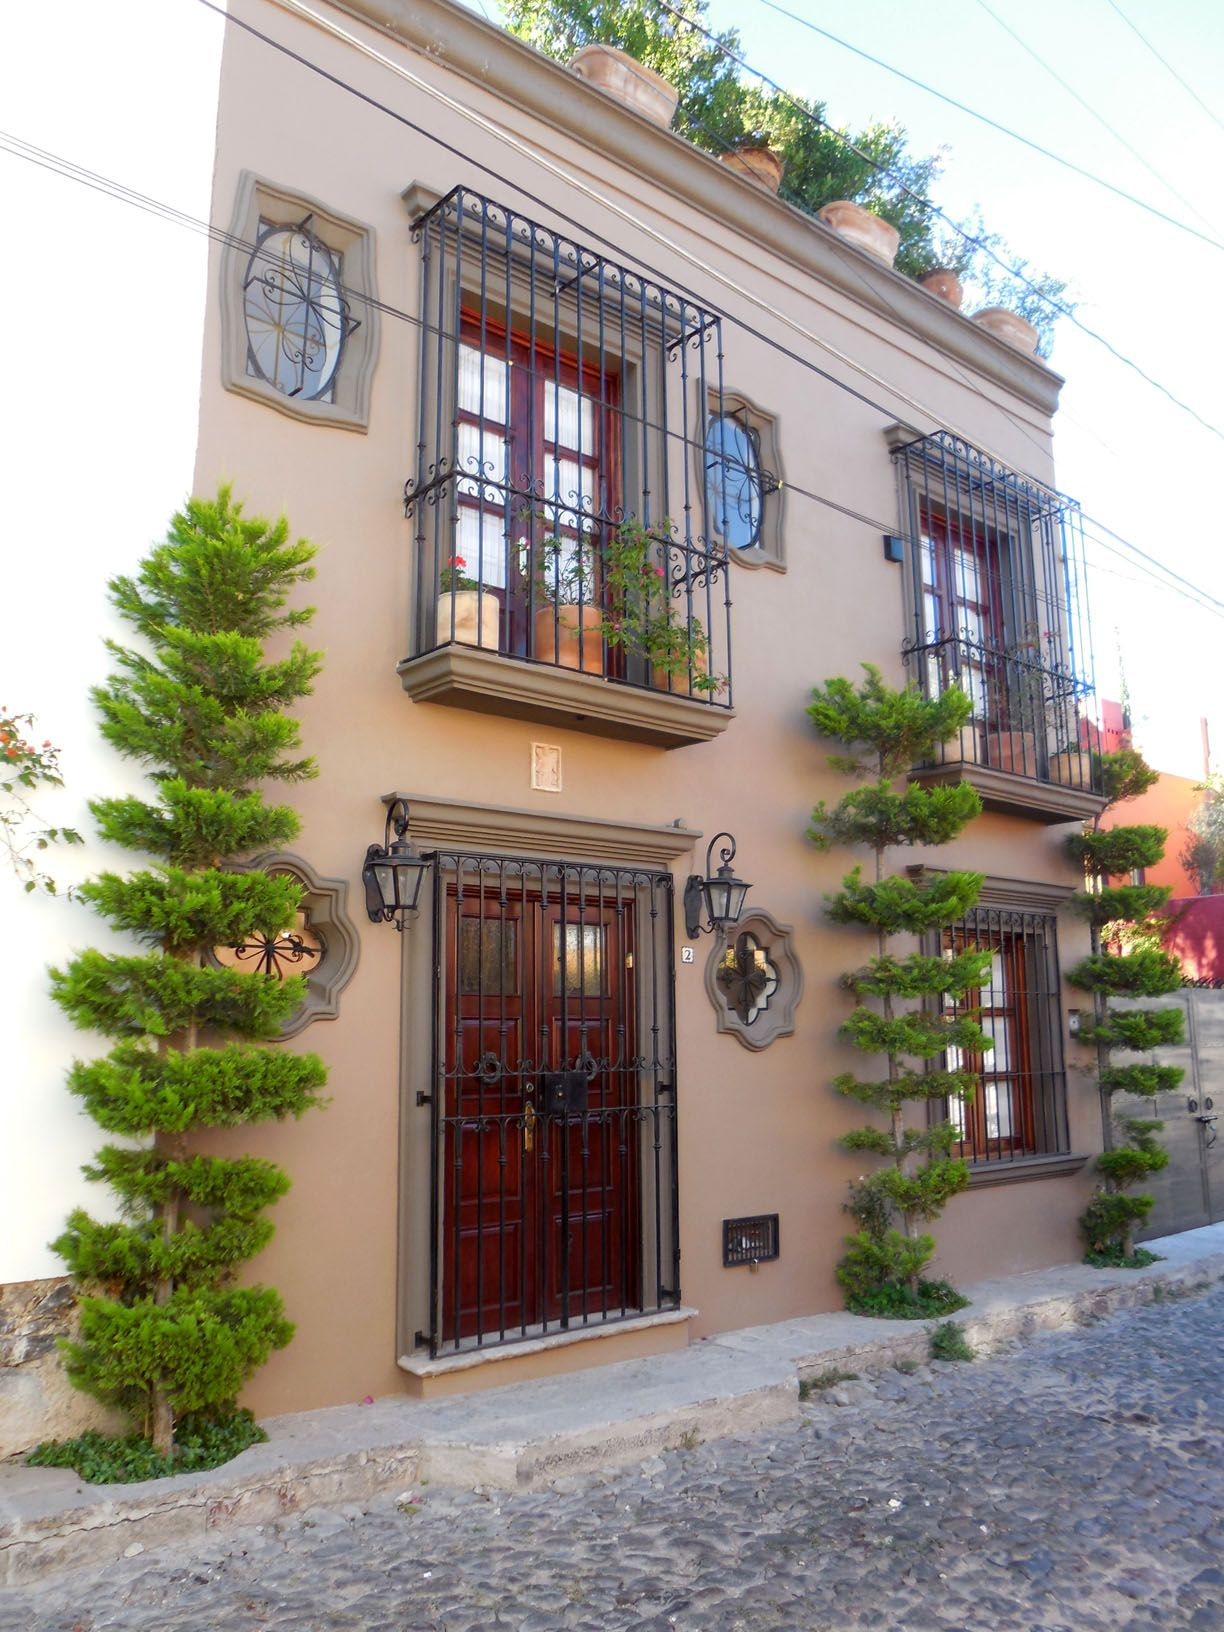 A nice looking house in san miguel dise os de casas en for Disenos de casas mexicanas